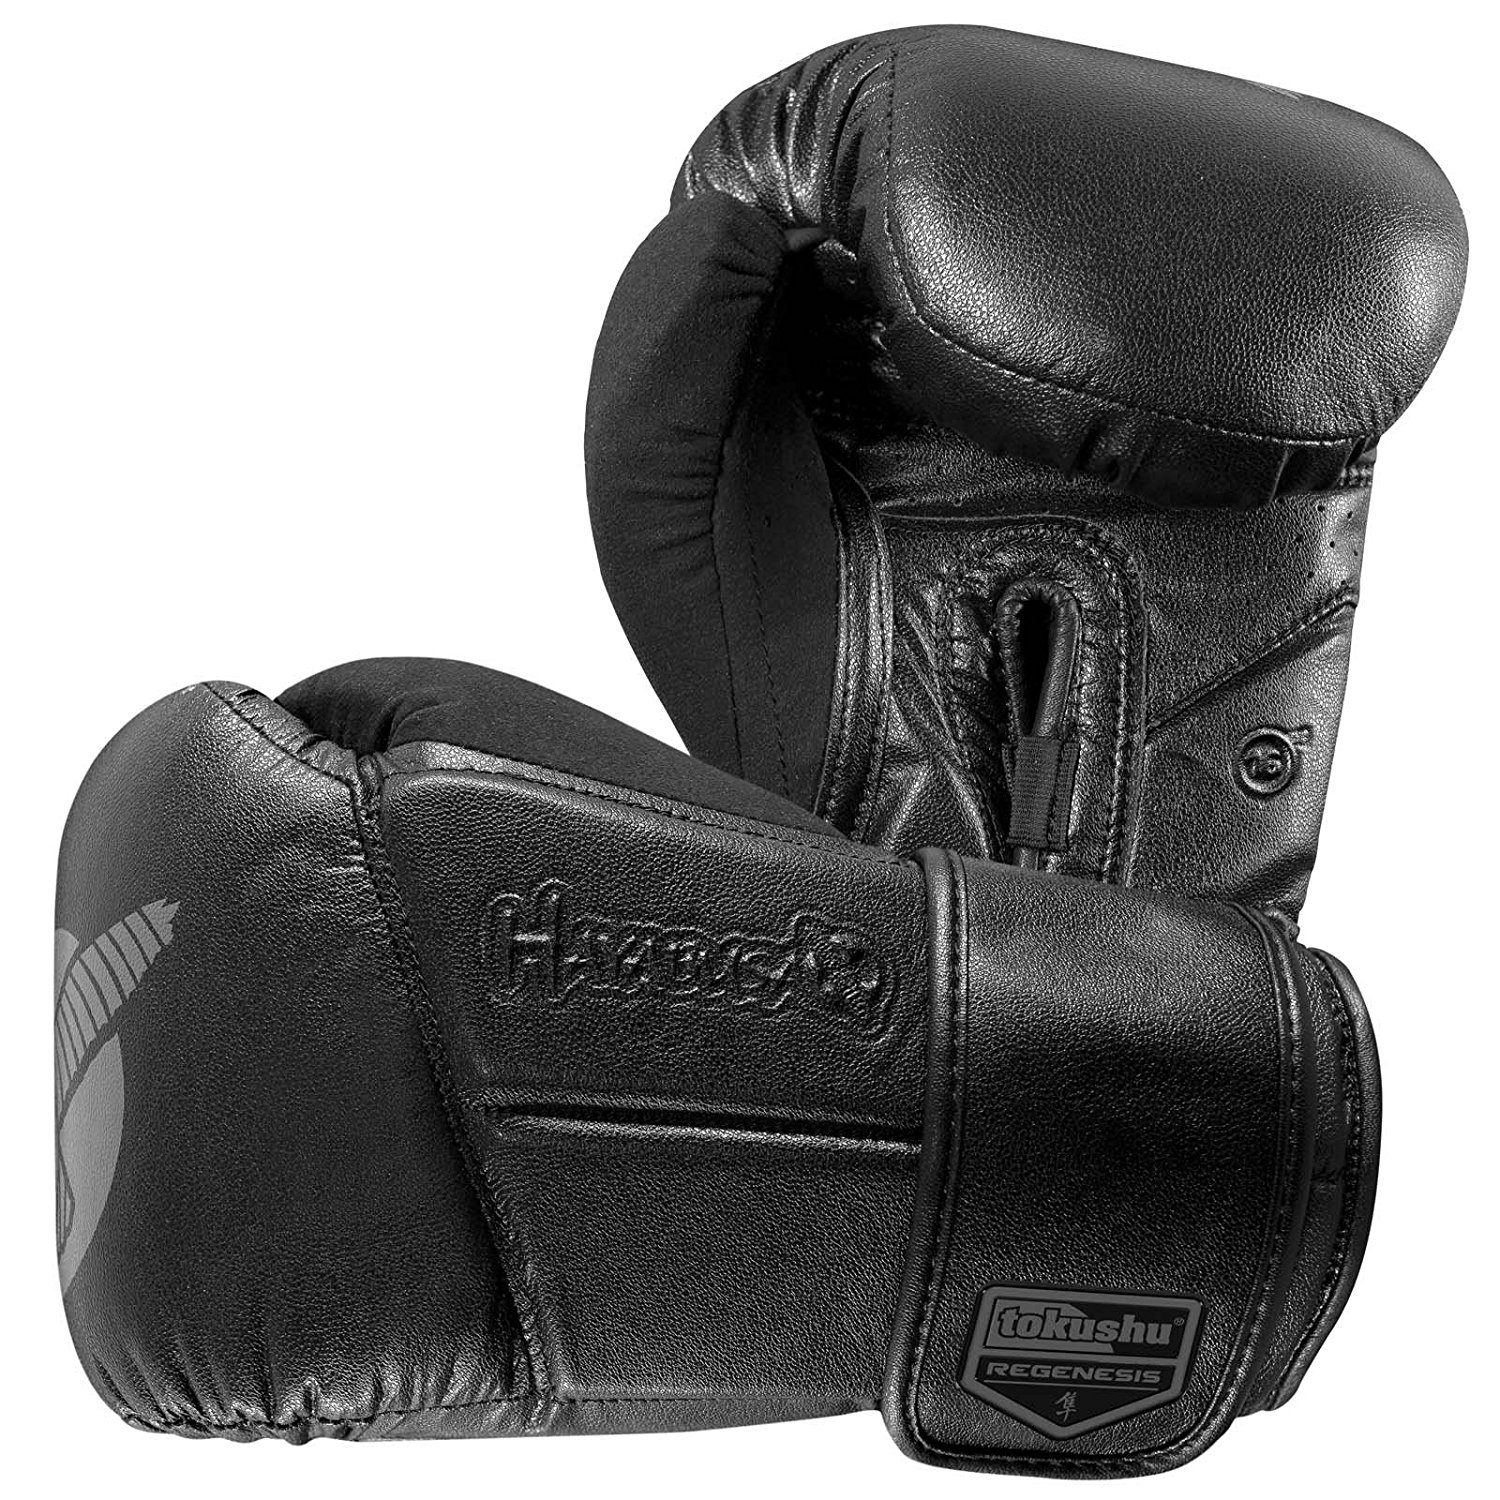 Best Boxing Gloves For Heavy Bag - Check Out Our Selection!